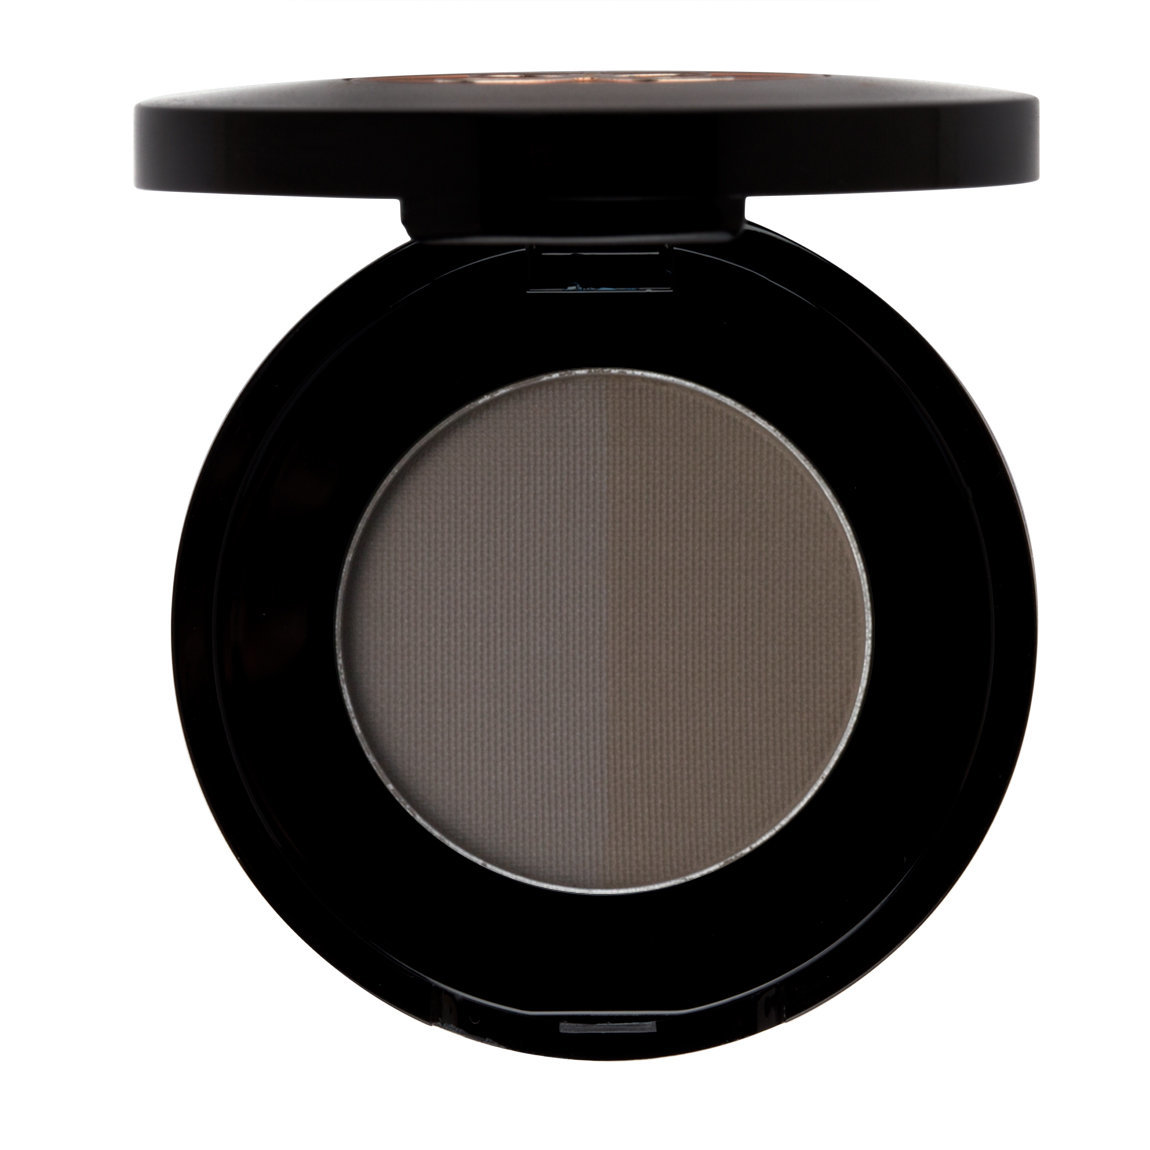 Anastasia Beverly Hills Brow Powder Duo Ash Brown product smear.